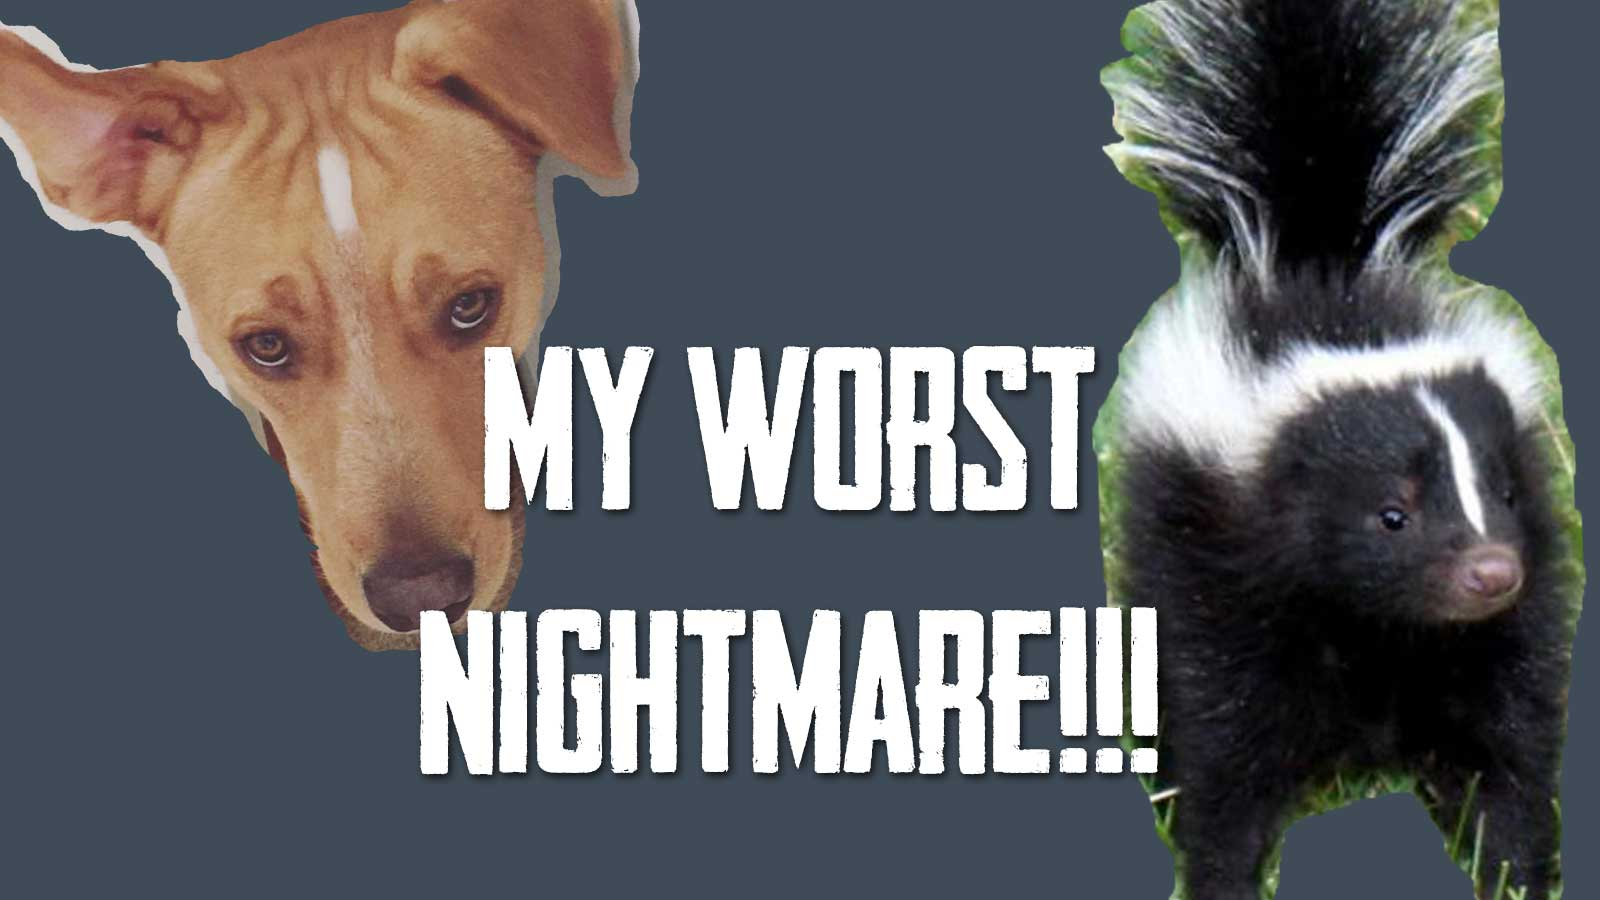 My Worst Nightmare! Duke vs a SKUNK! | The latest vlog from Cosmopolitan Cornbread